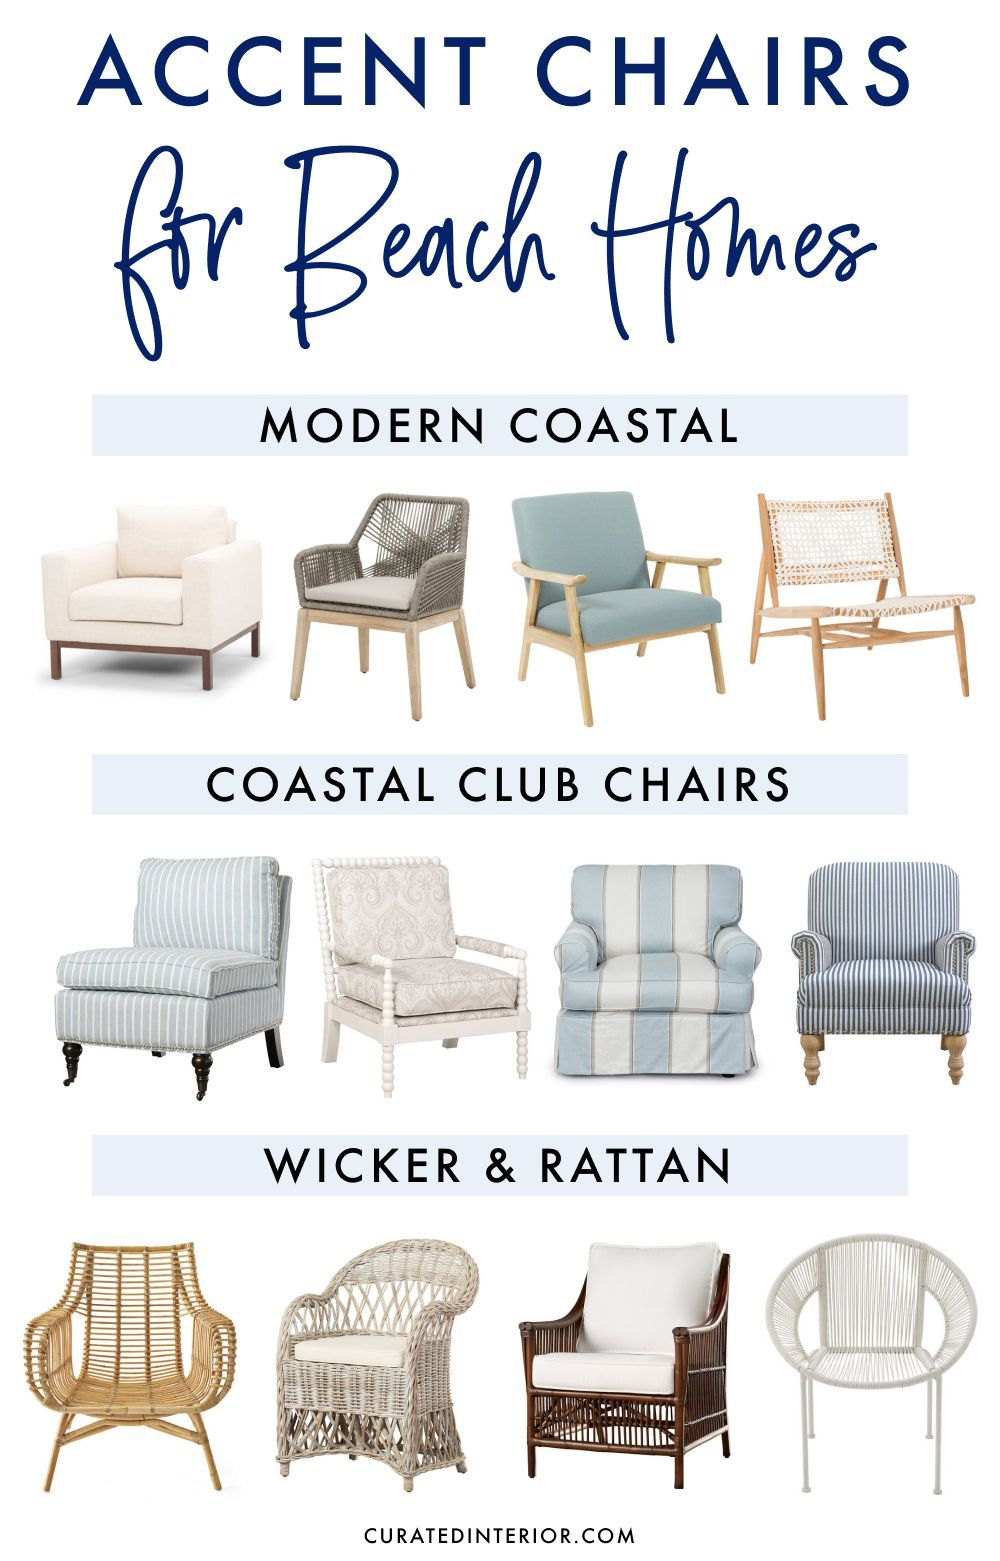 17 Accent Chairs For Beach Homes Living Room Chairs Coastal Living Room Accent Chairs For Living Room #nice #living #room #chairs